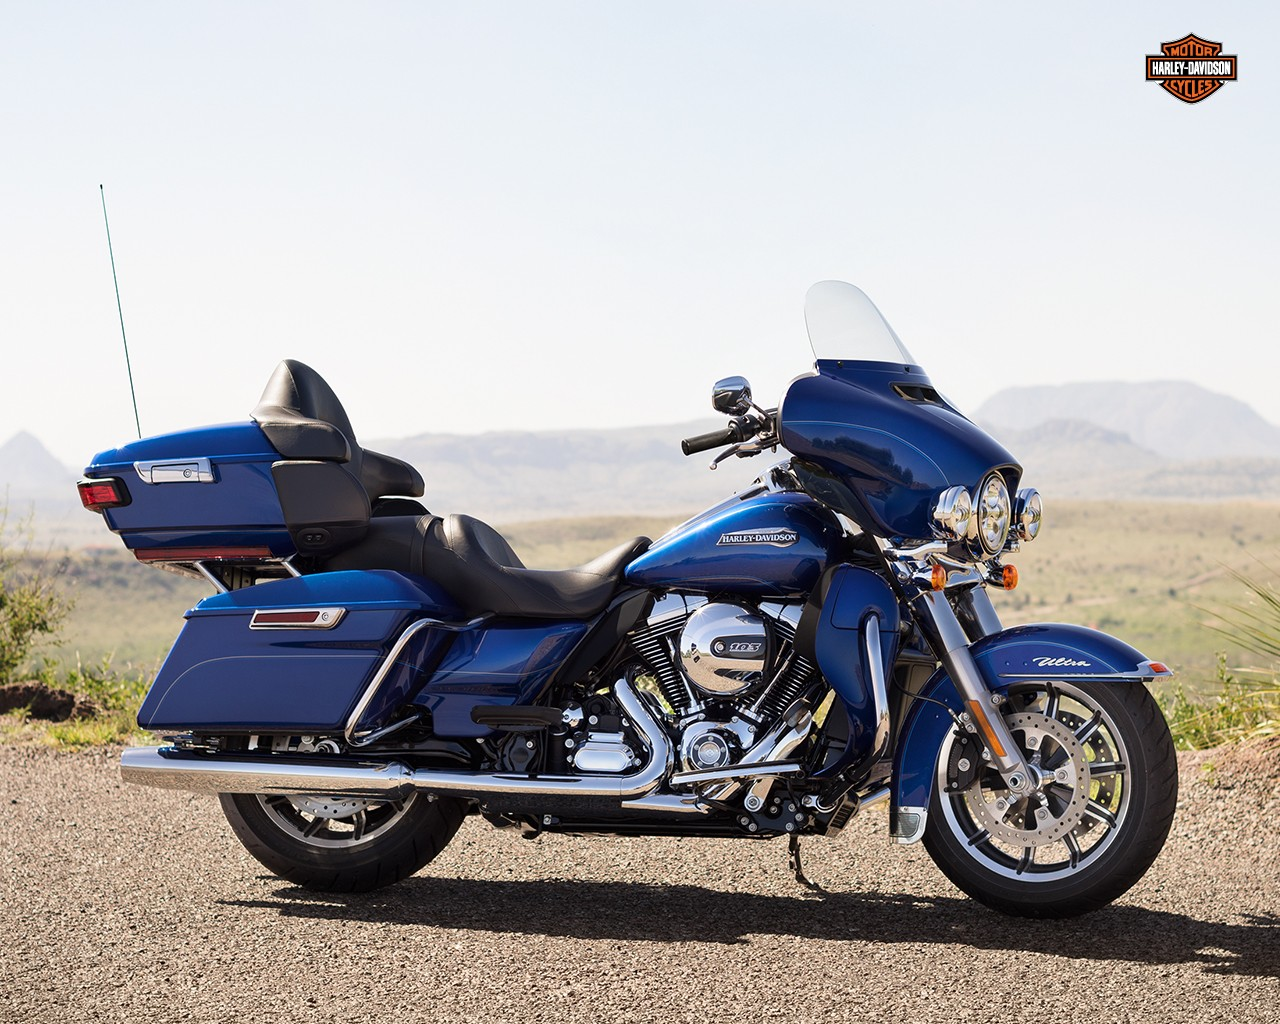 1280x1024 - Harley-Davidson Electra Glide Ultra Classic Wallpapers 18